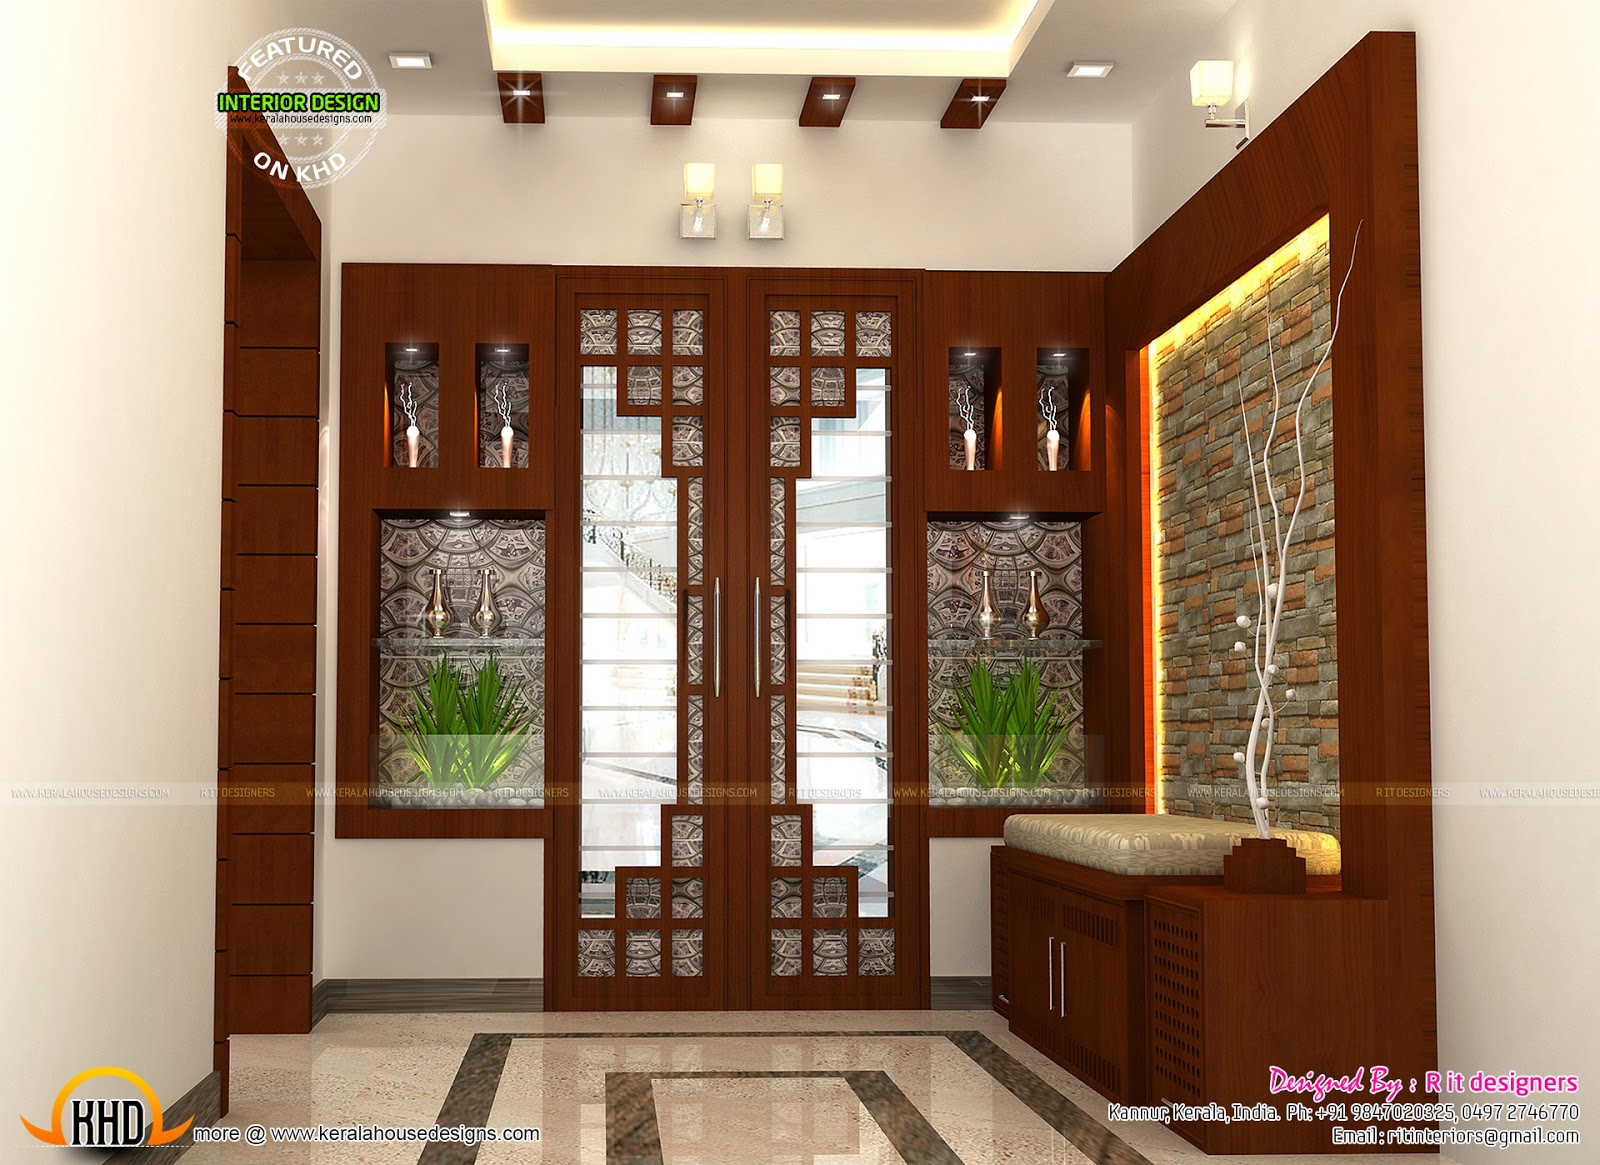 Interior decors by R it designers - Kerala home design and ...